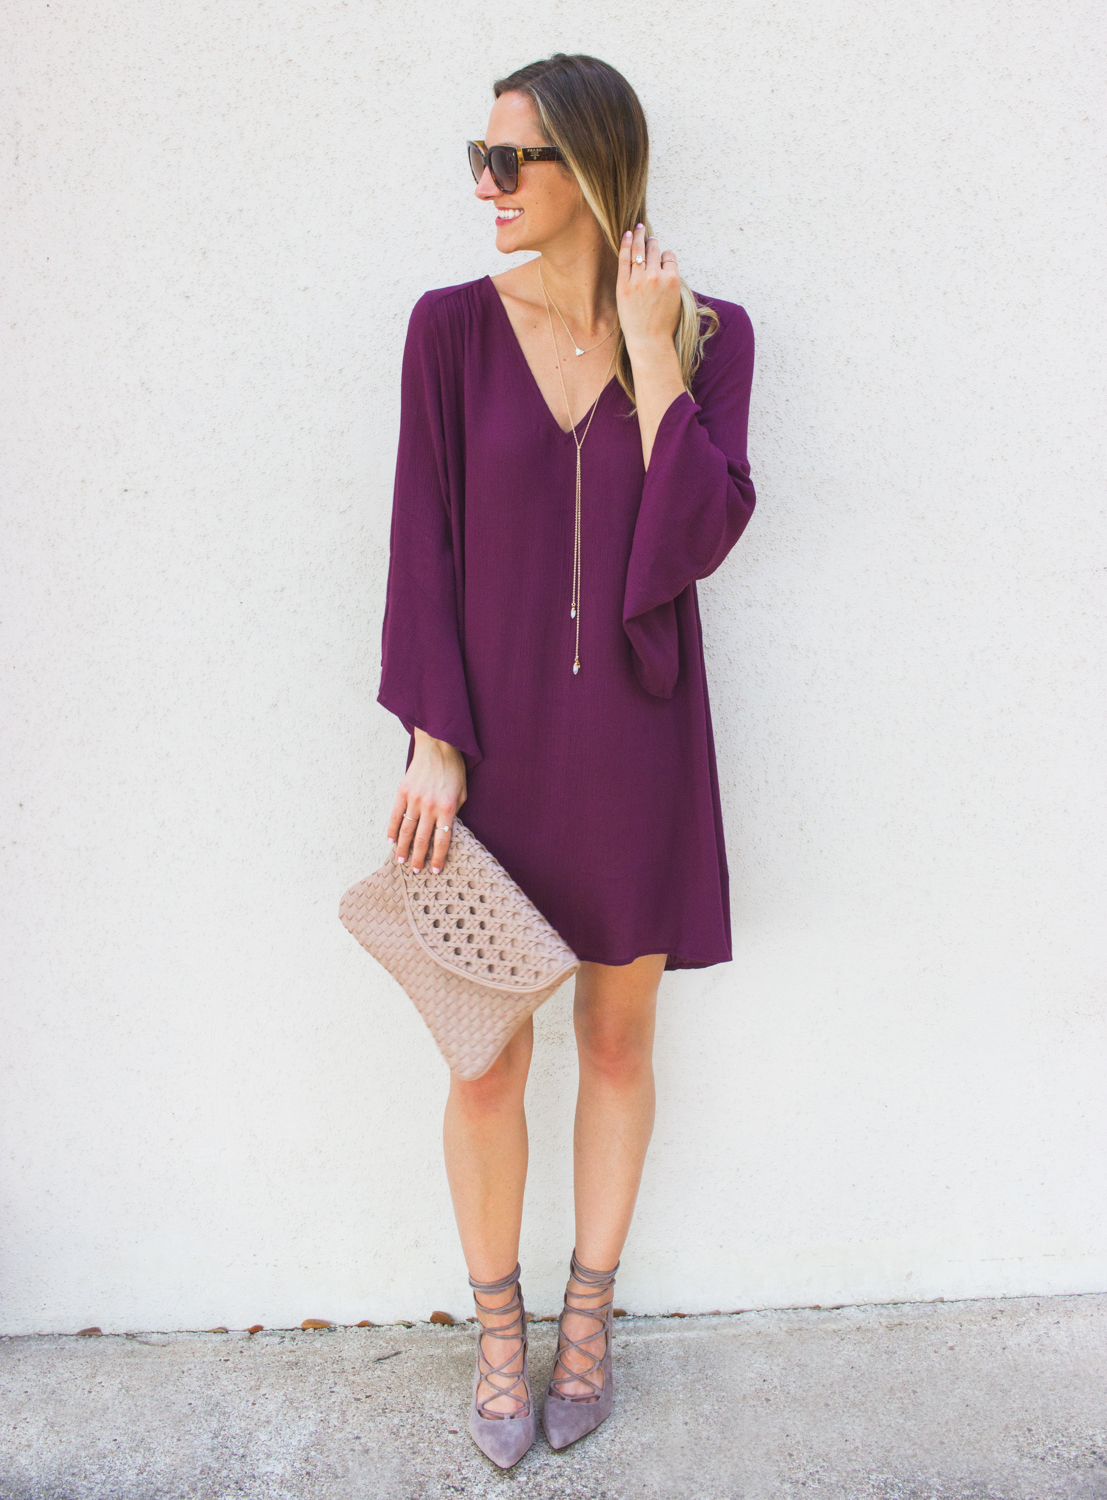 livvyland-blog-olivia-watson-austin-texas-fashion-blogger-bell-sleeve-maroon-wine-burgundy-oxblood-dress-lace-up-heels-7